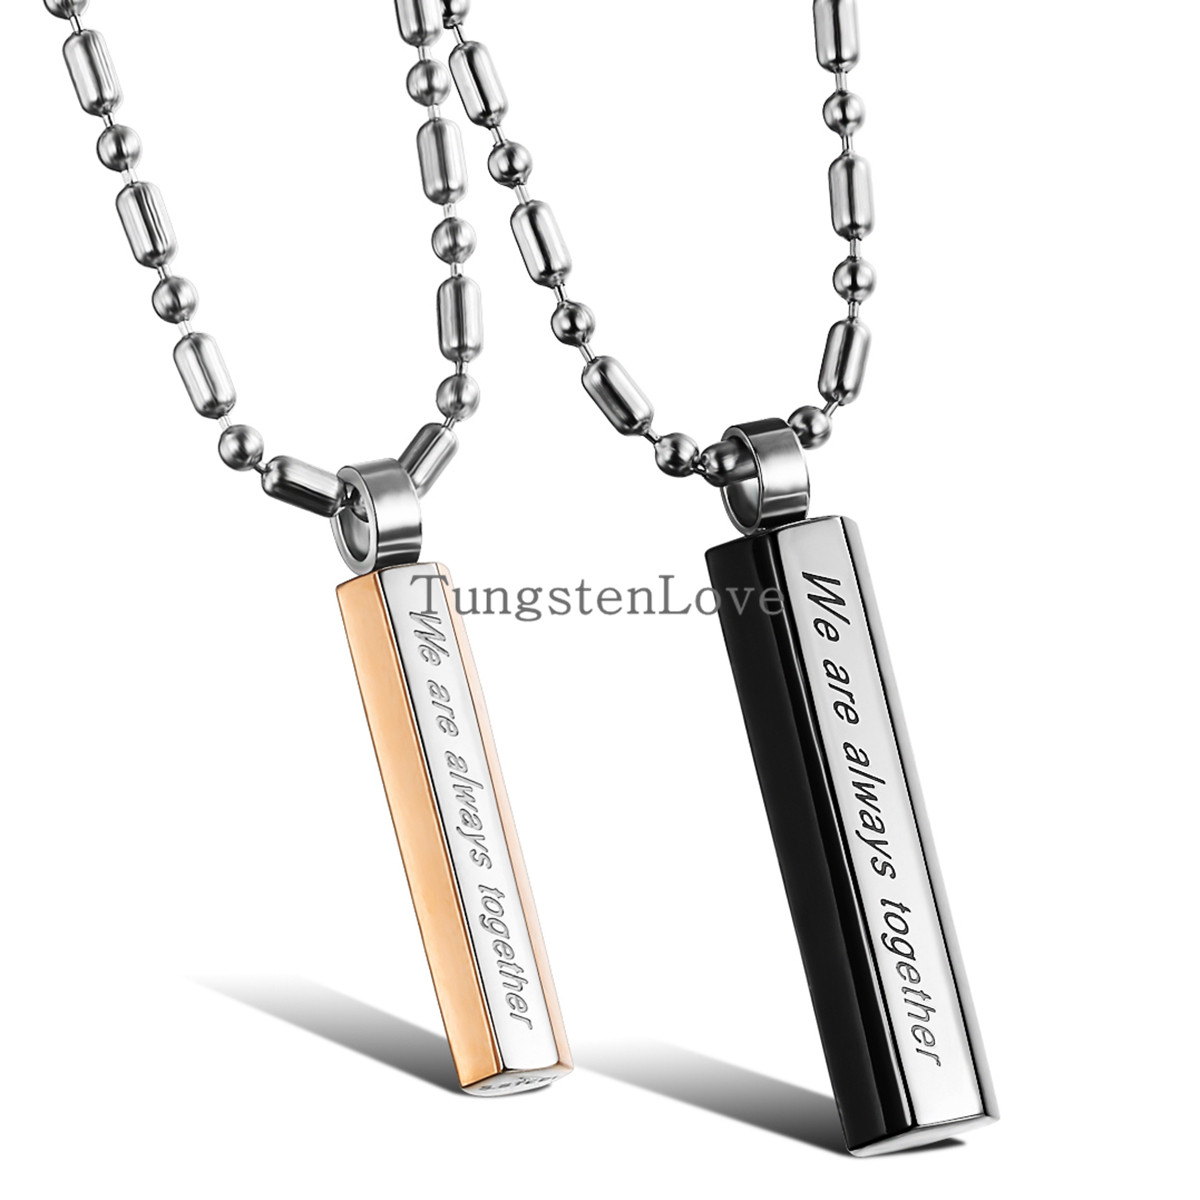 """Wholesale Fashion Jewelry Couples Lovers Titanium Steel Pendant Necklace """"We are always together"""" Men Women collares 2015(China (Mainland))"""